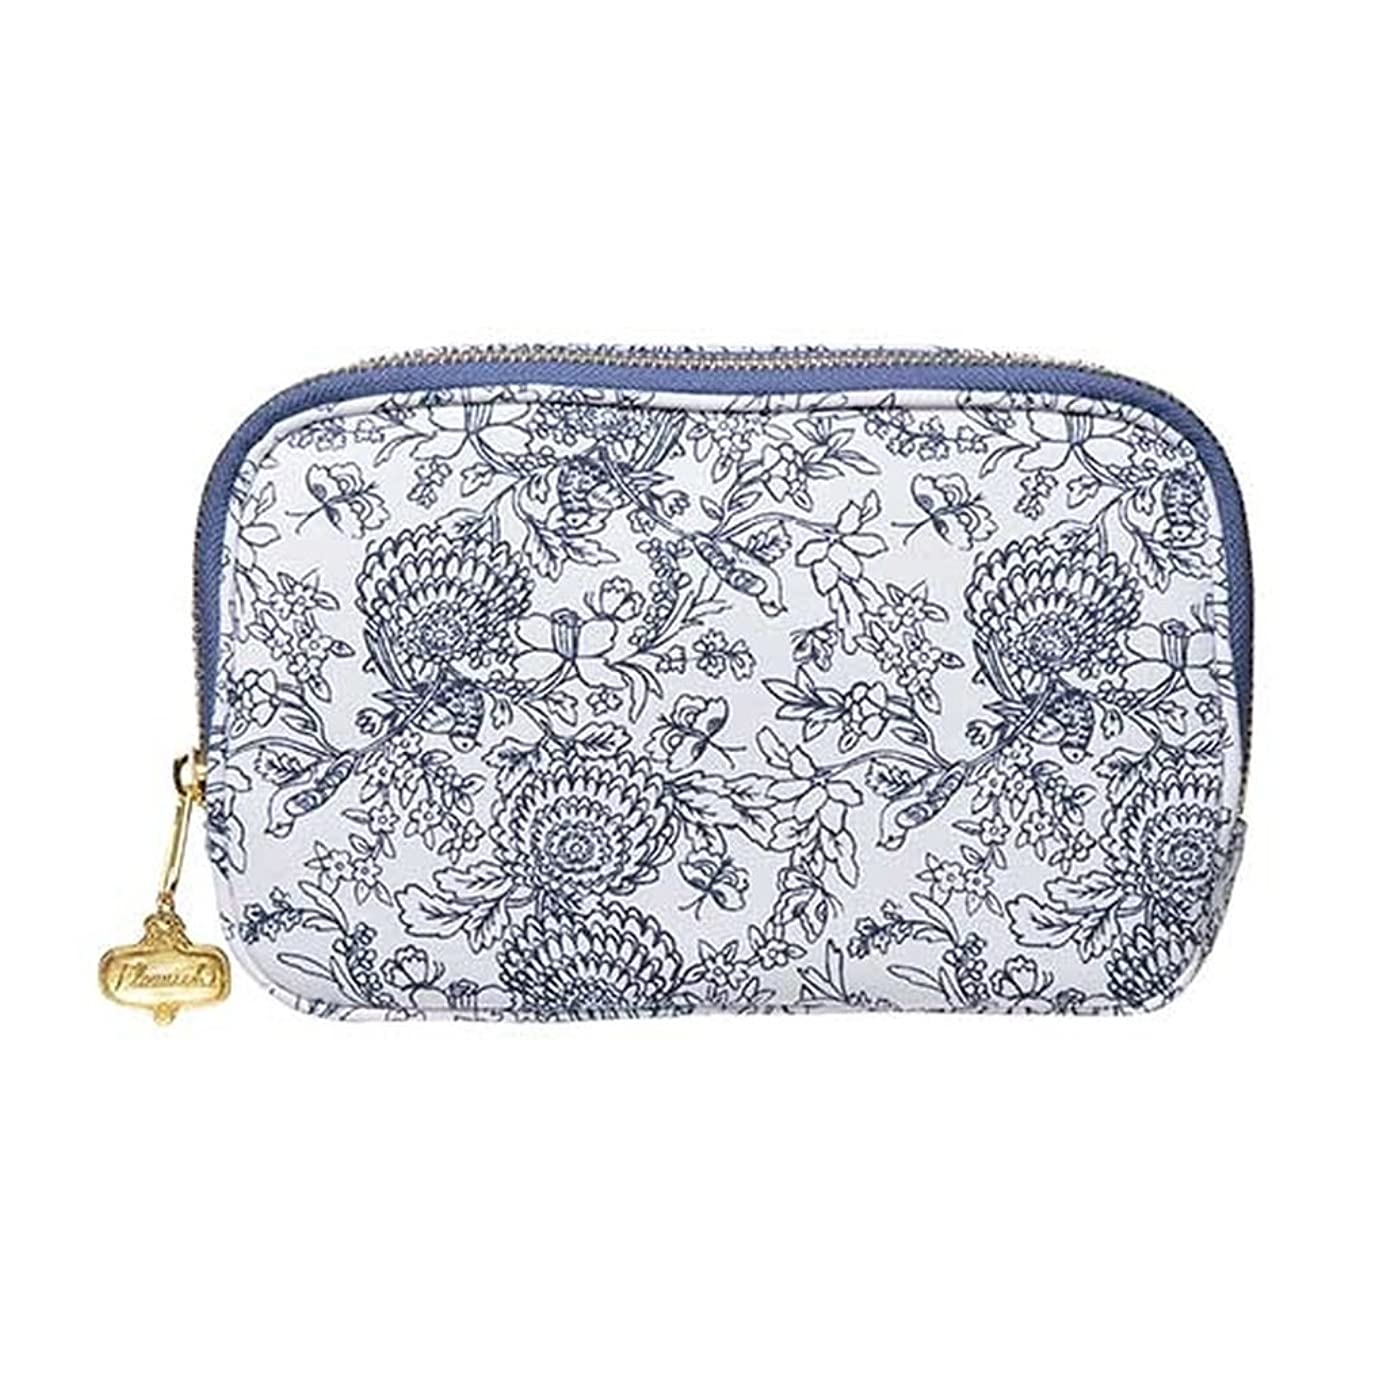 C.R. Gibson Blue Floral Travel Cable Organizer Case, 8.5